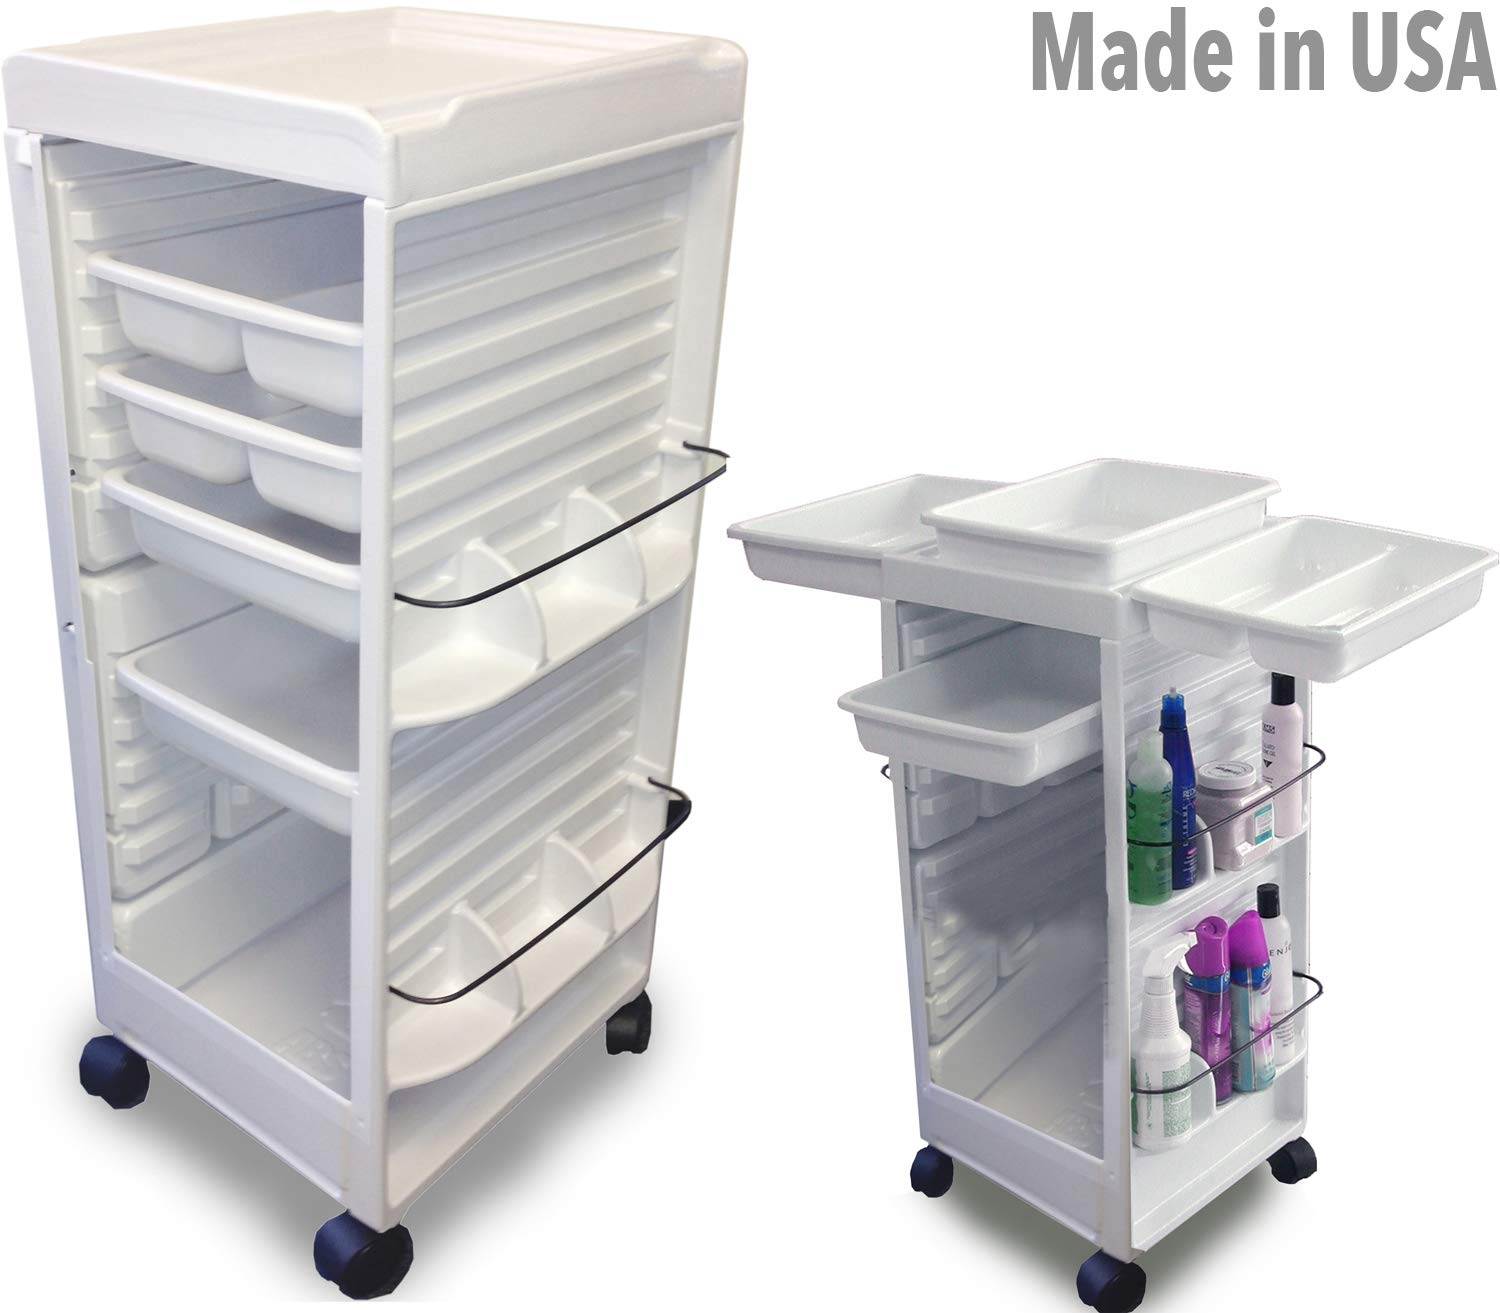 N20E Aesthetician Roll-About Facial Cart Trolley White Non Lockable Made in USA by Dina Meri by Dina Meri